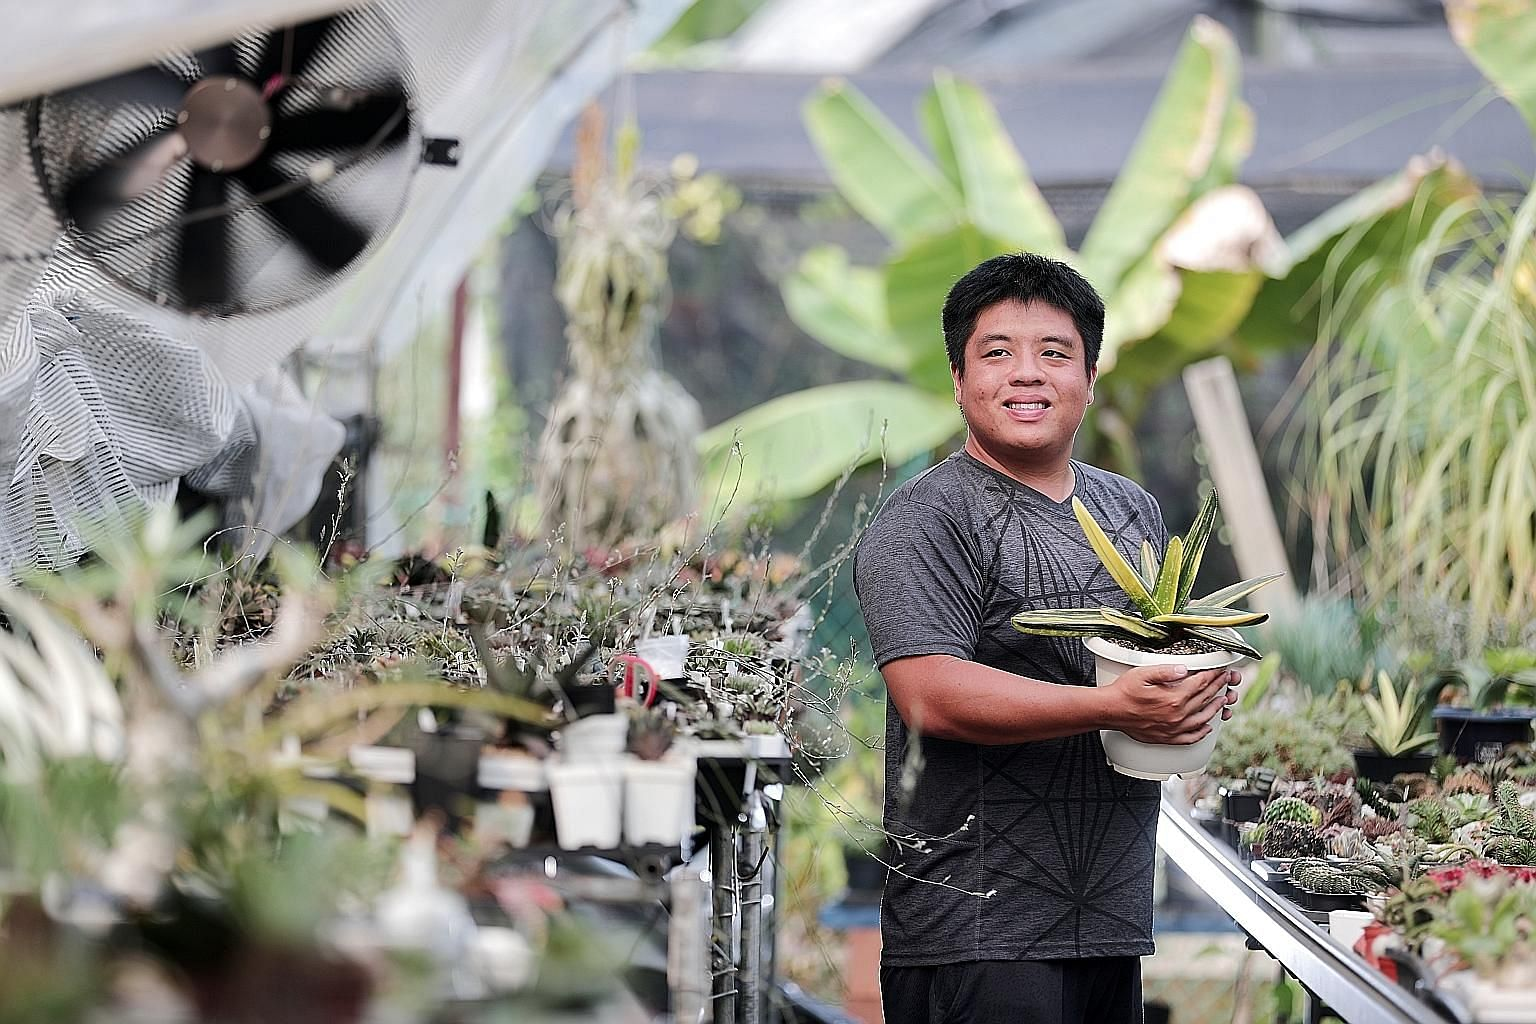 Ms Namita Kinjawadekar (above left) has names for each of her 60 plants in her flat's balcony while Mr David Mong (above right), with his wife Sharon Phua, carries his favourite orchid into his air-conditioned bedroom at night. Mr Shawn Chen (left) f